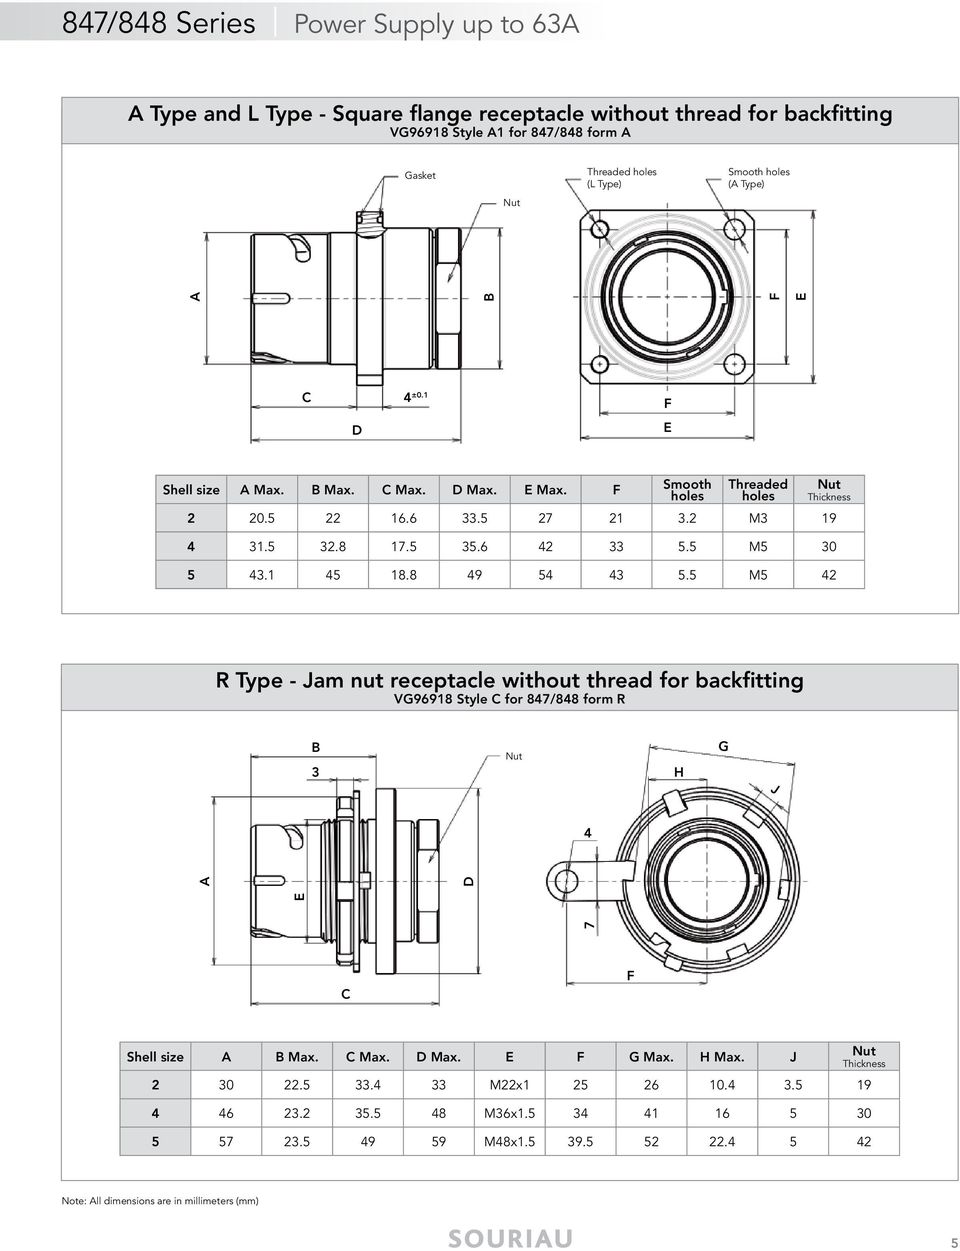 1 45 18.8 49 54 43 5.5 M5 42 Thickness R Type - Jam nut receptacle without thread for backfitting V96918 Style for 847/848 form R 3 H J 4 7 Shell size Max. Max. Max. Max. H Max.